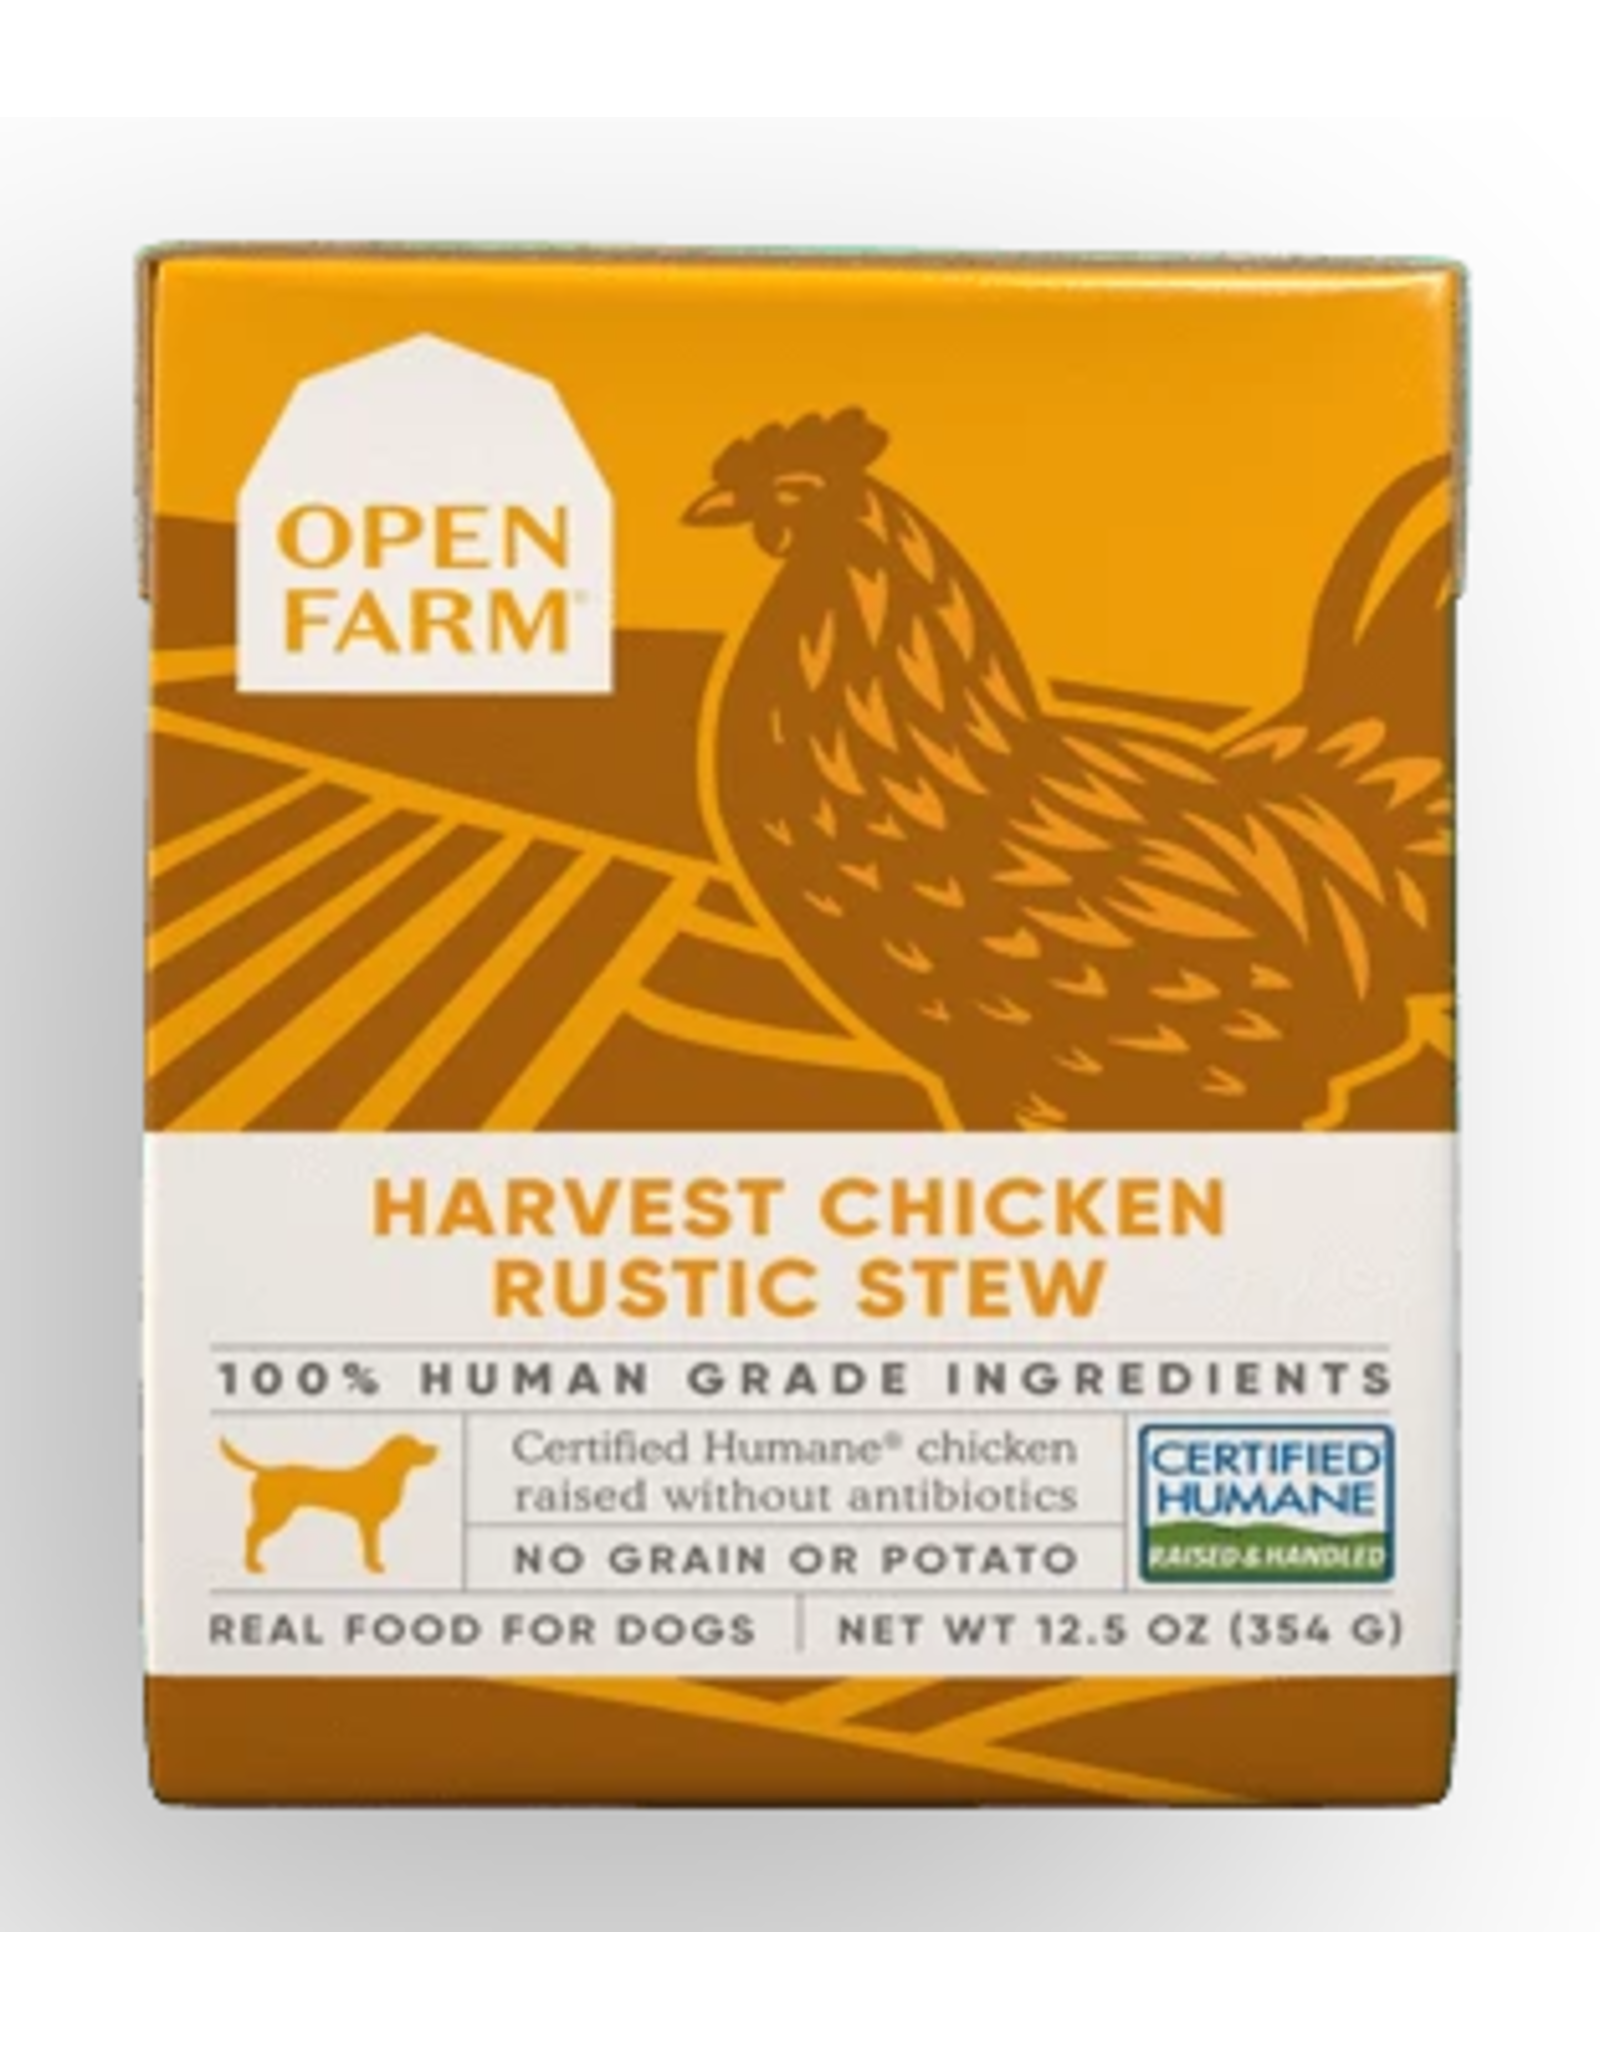 Open Farm Open Farm - DOG - CAN - Chicken Rustic Stew - 12.5oz